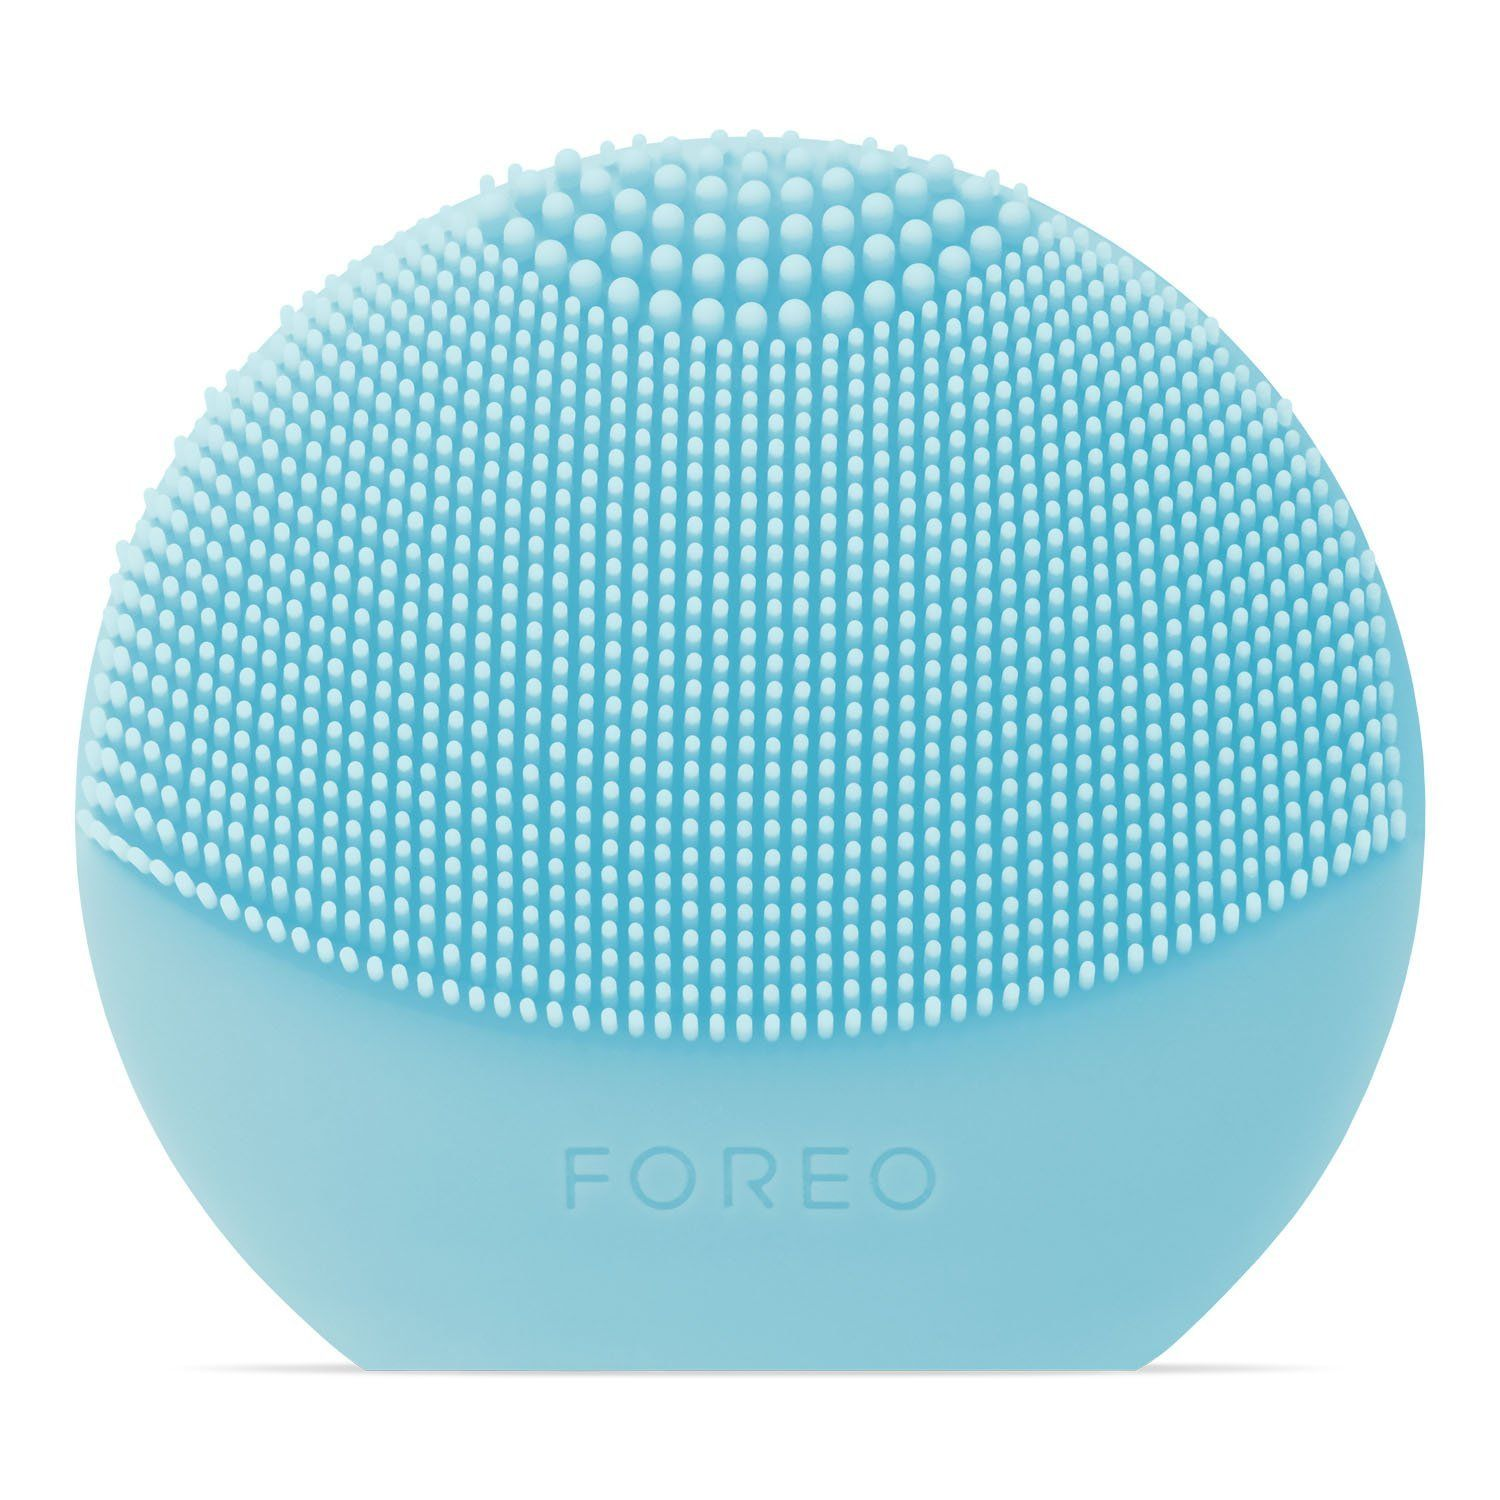 Facial Cleansing Brush  This cleansing brush is a lovelly addition